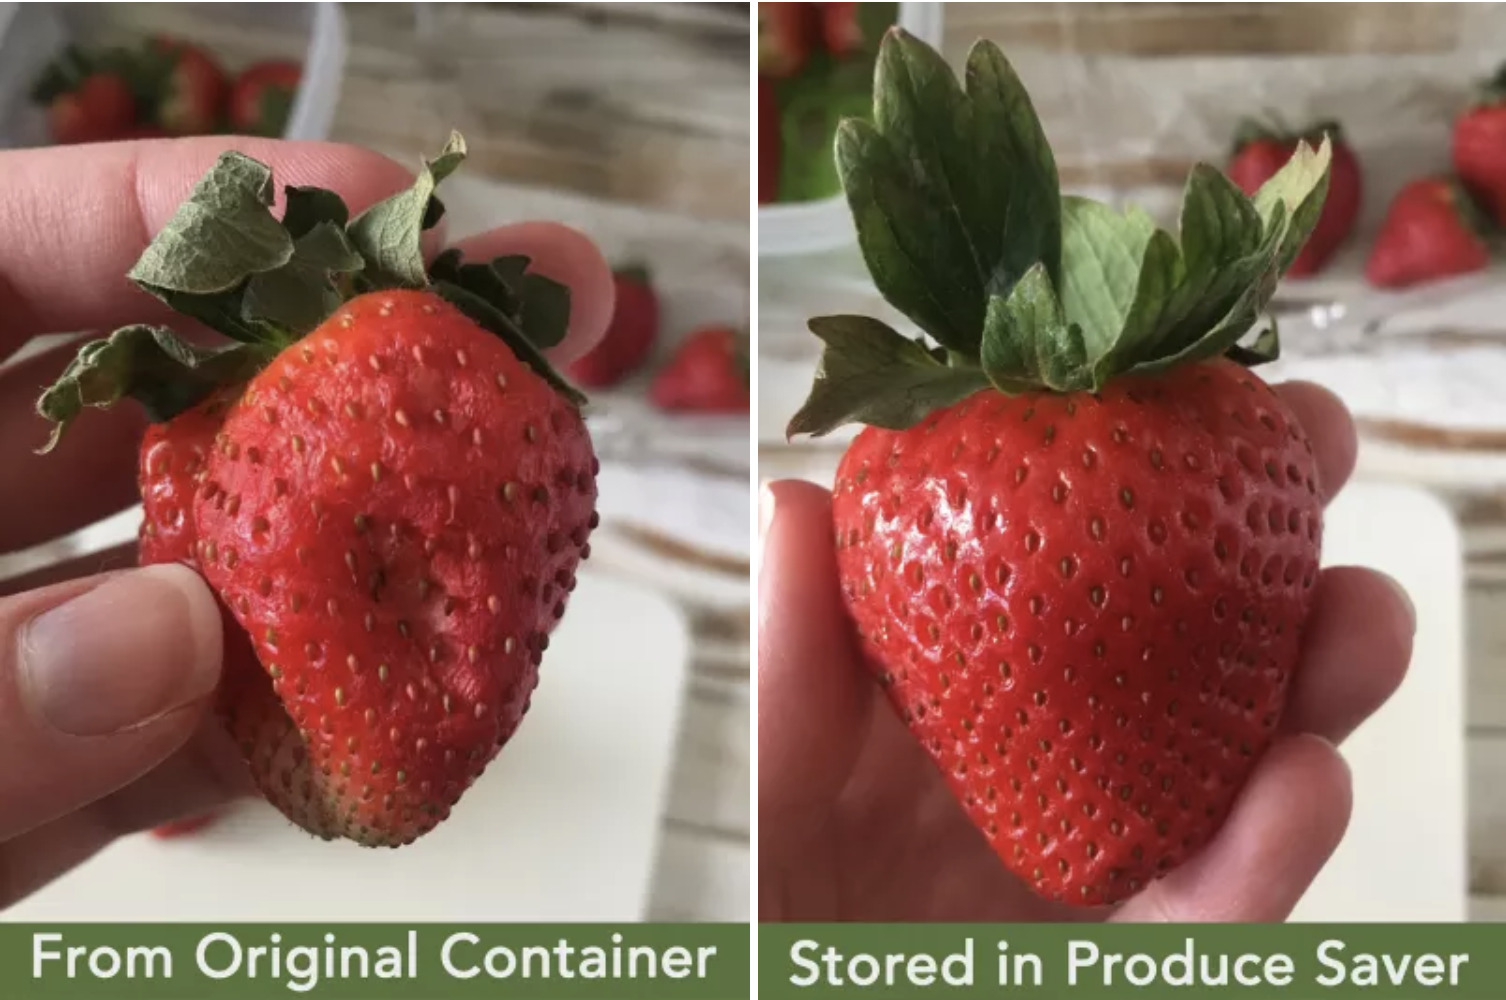 A BuzzFeed Shopping reviewer's image comparing a strawberry kept fresh in the Rubbermaid container with one kept in the original clamshell (significantly soft and mushy)